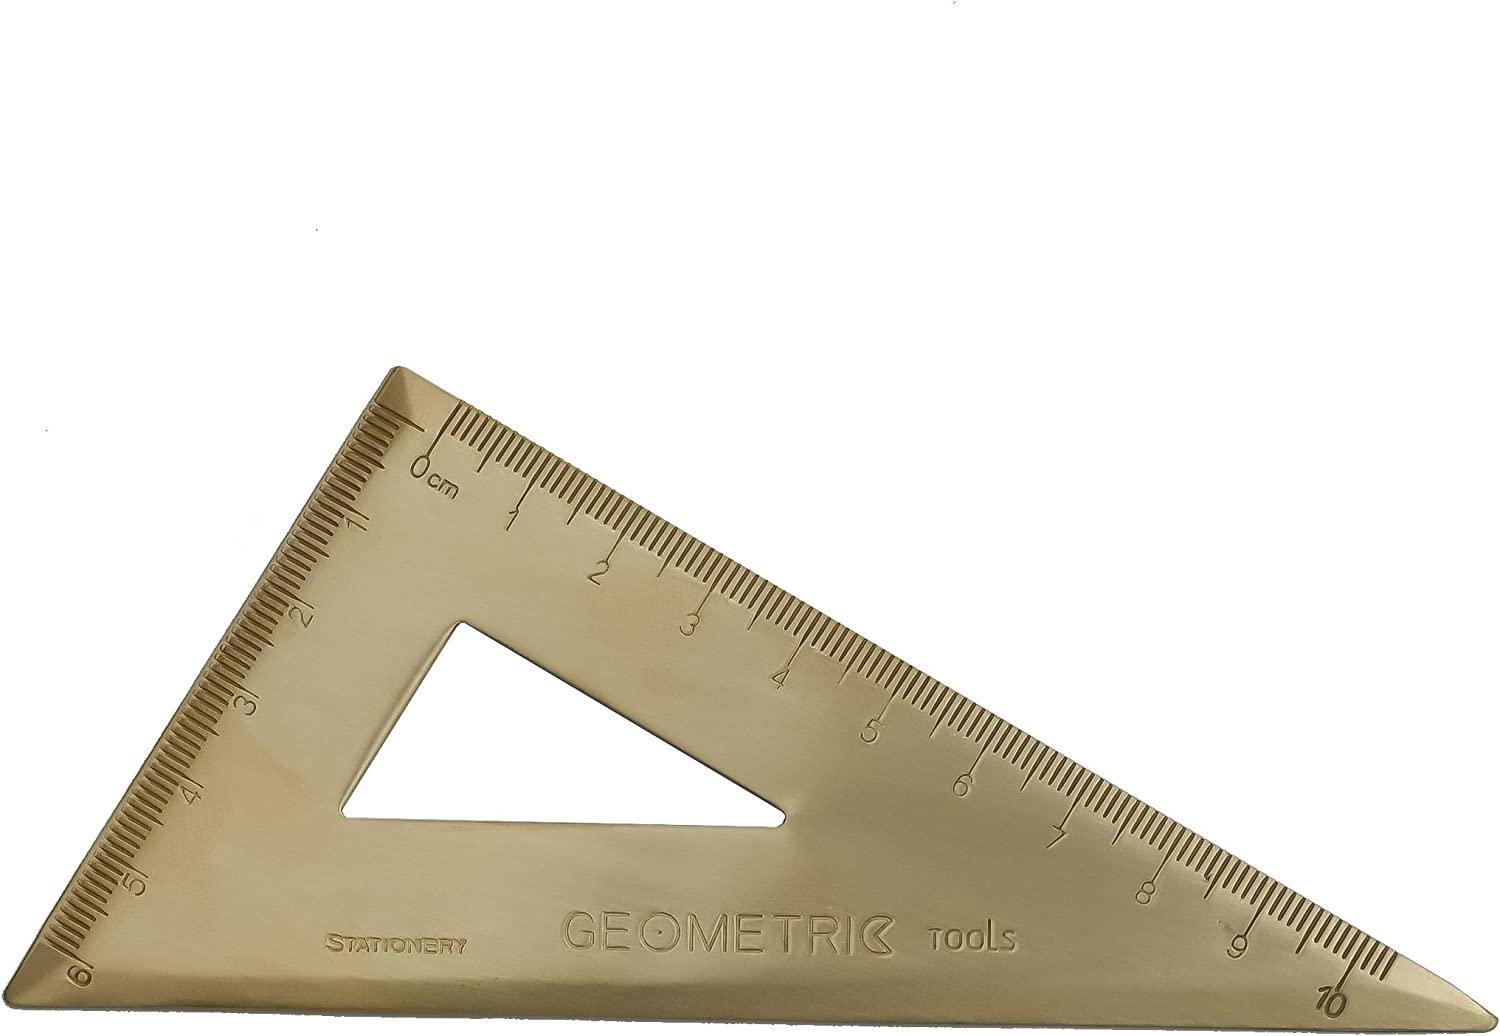 Student Ruler Sets Stationery Drawing Square Triangle Ruler Study Measure Gift 2